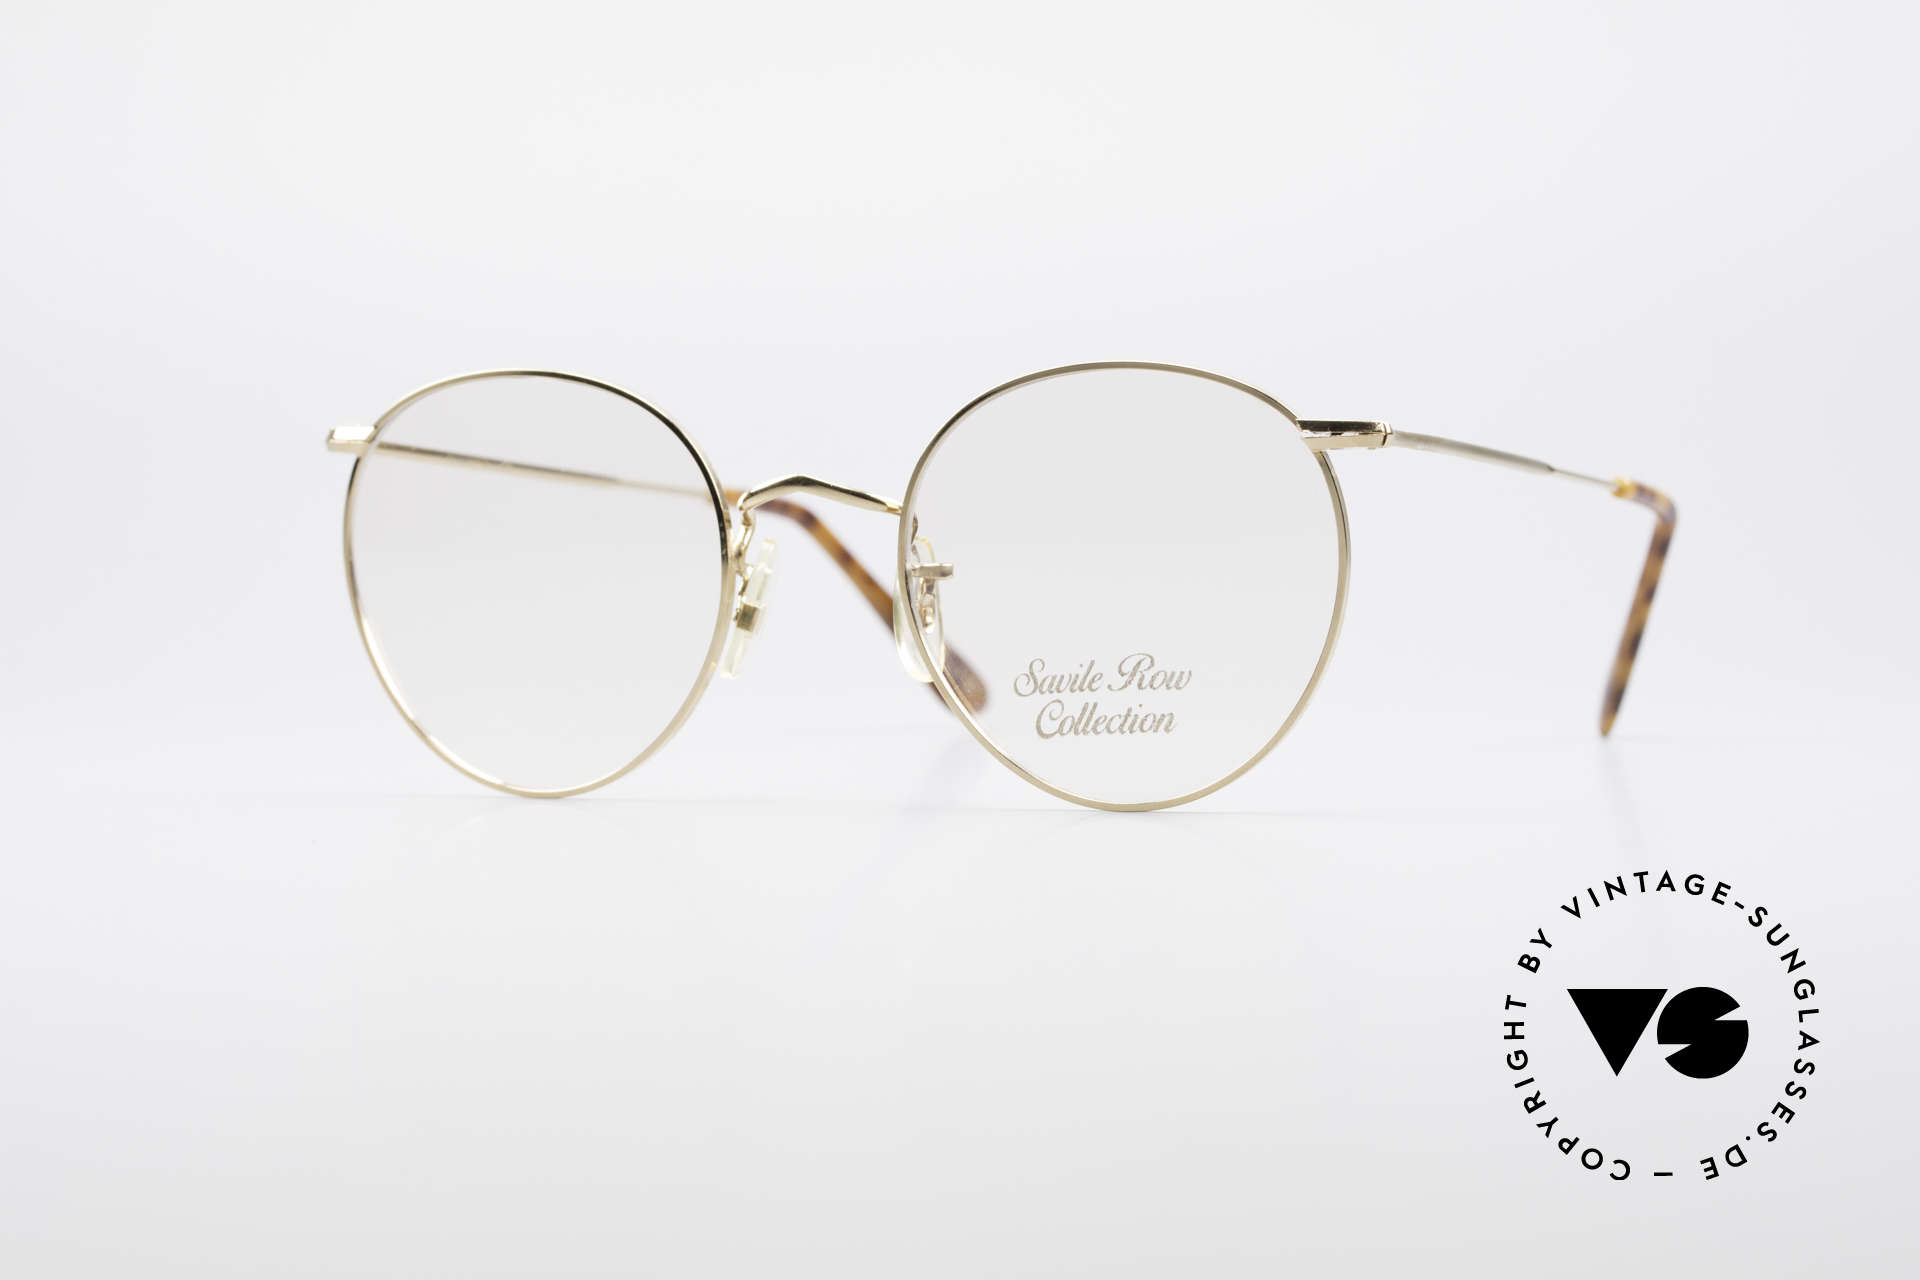 Savile Row Panto 49/20 John Lennon Vintage Glasses, 'The Savile Row Collection' by ALGHA, UK Optical, Made for Men